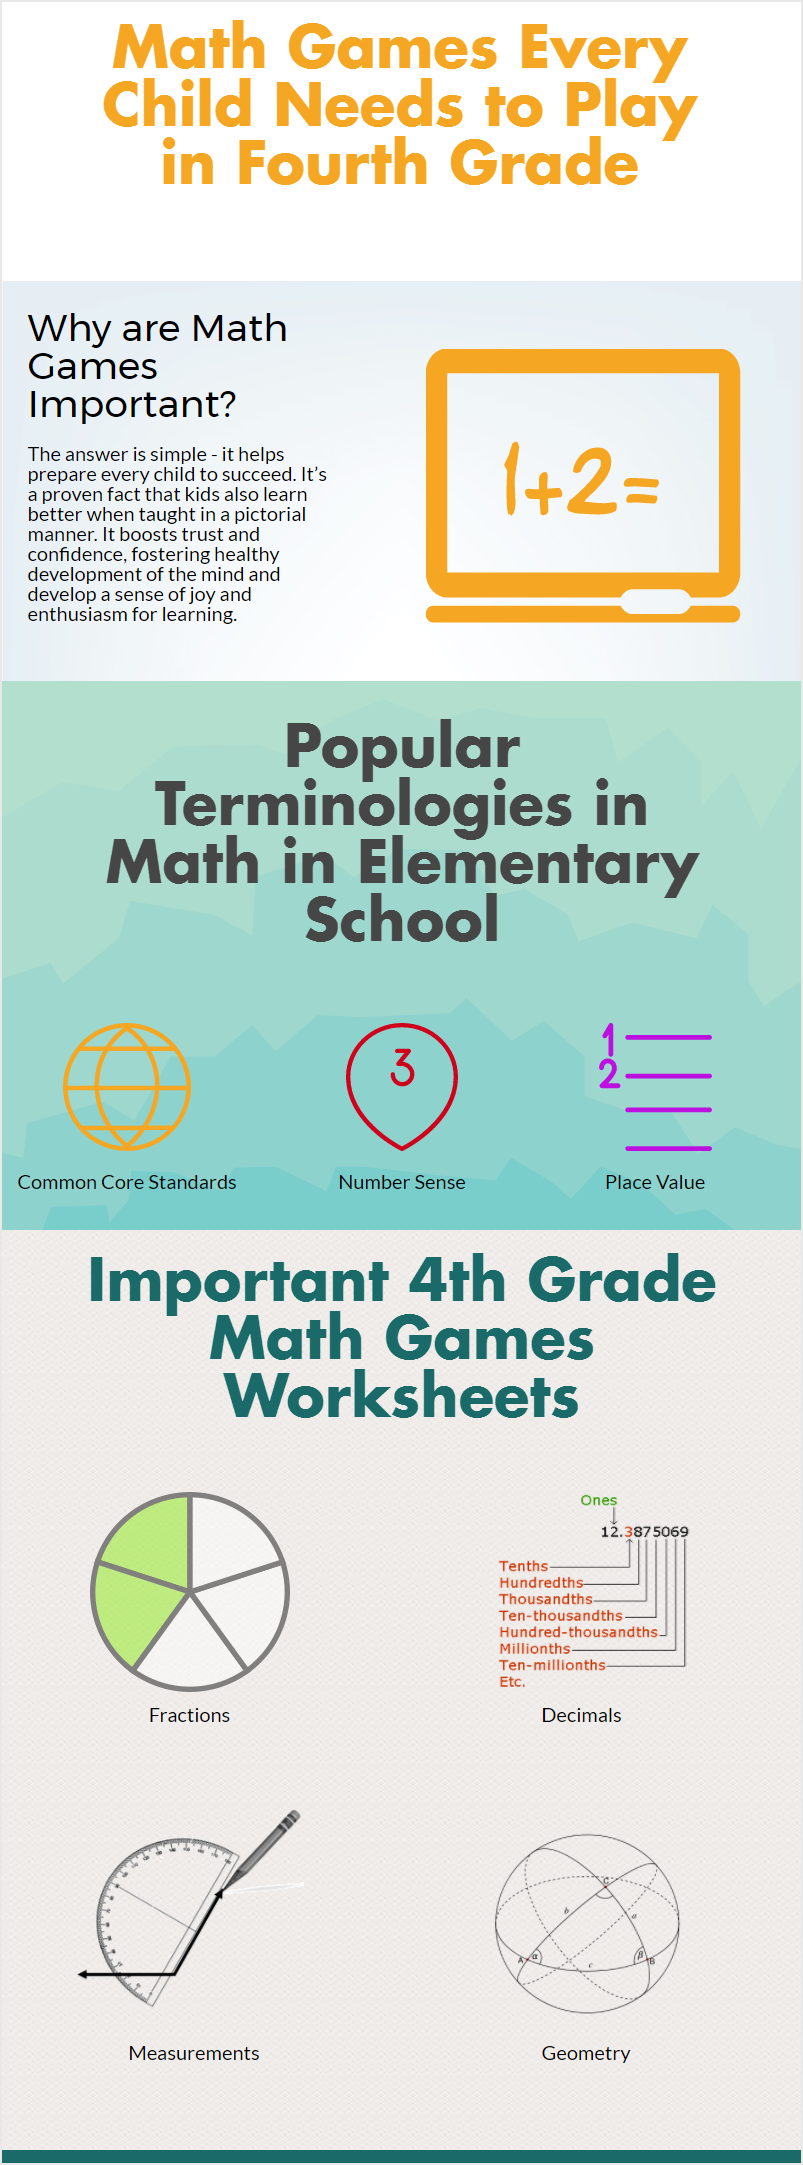 Top Four Math Games for 4th Grade Math [INFOGRAPHIC]